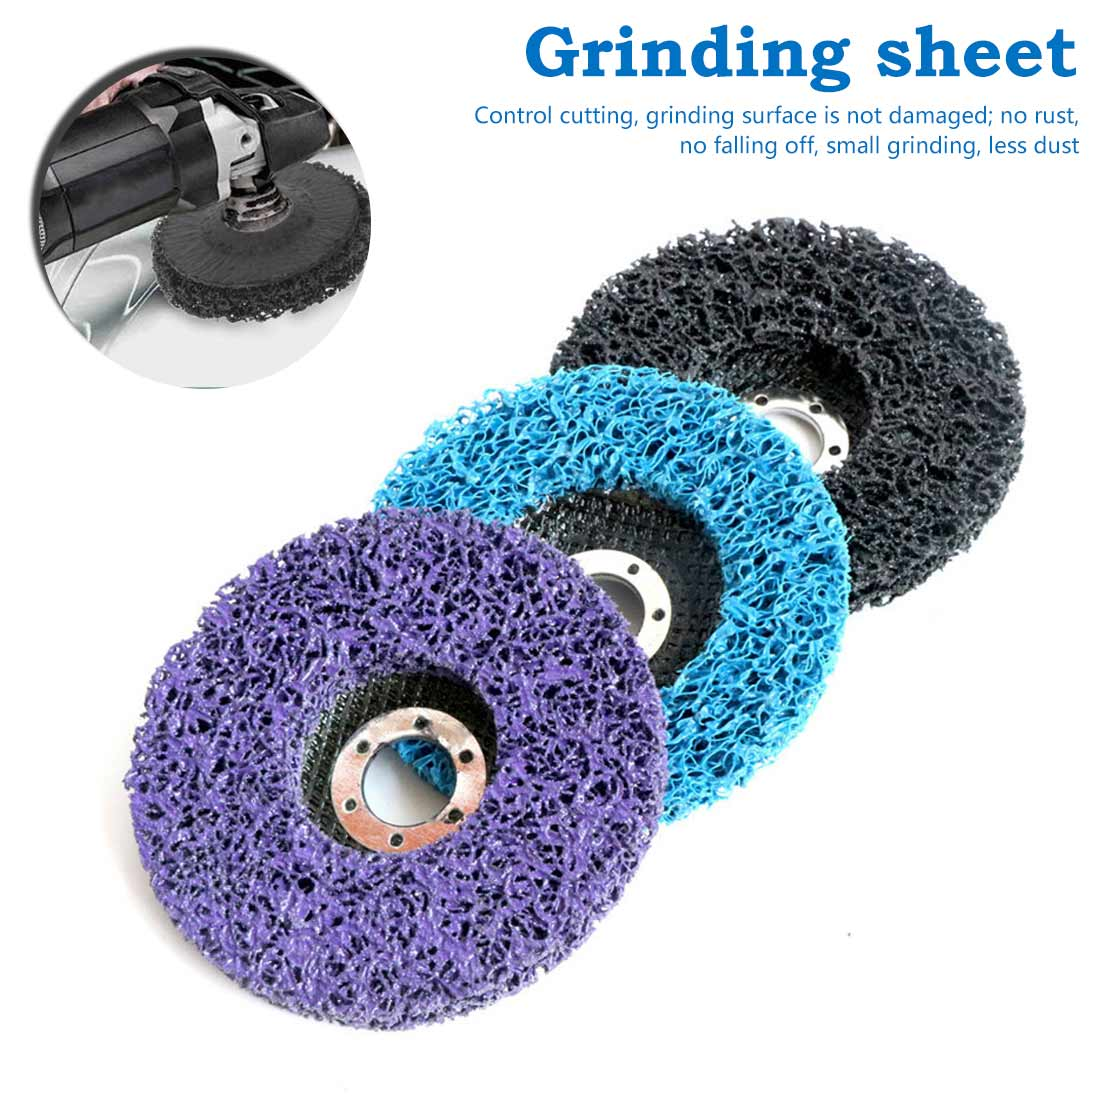 100x16mm Cleaning Strip Wheel Grinding Disc For Paint Rust Grinder Remover Tools Angle Grinder Rust Remover Sheet